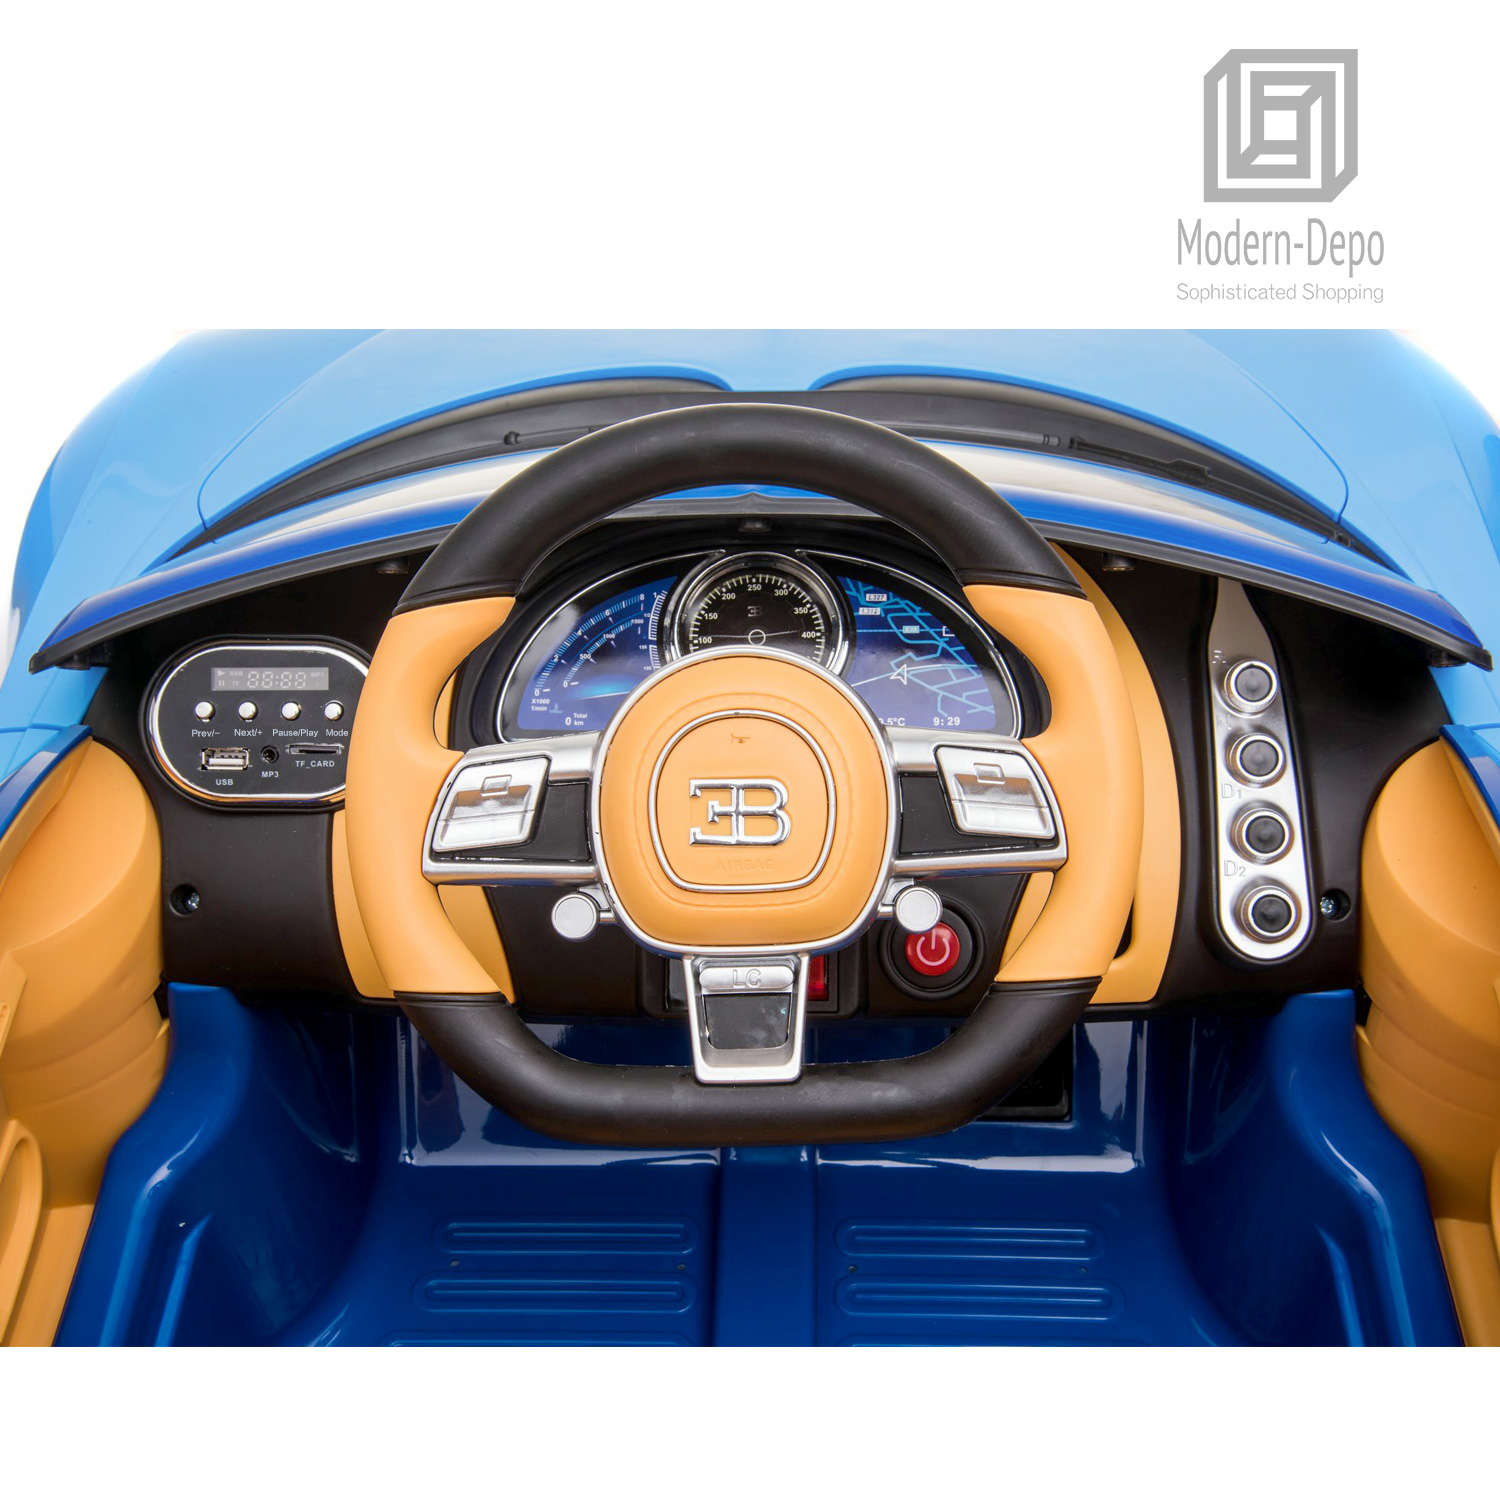 Bugatti-Chiron-12V-Kids-Ride-On-Car-with-Remote-Control-High-Speed-Motor miniature 21